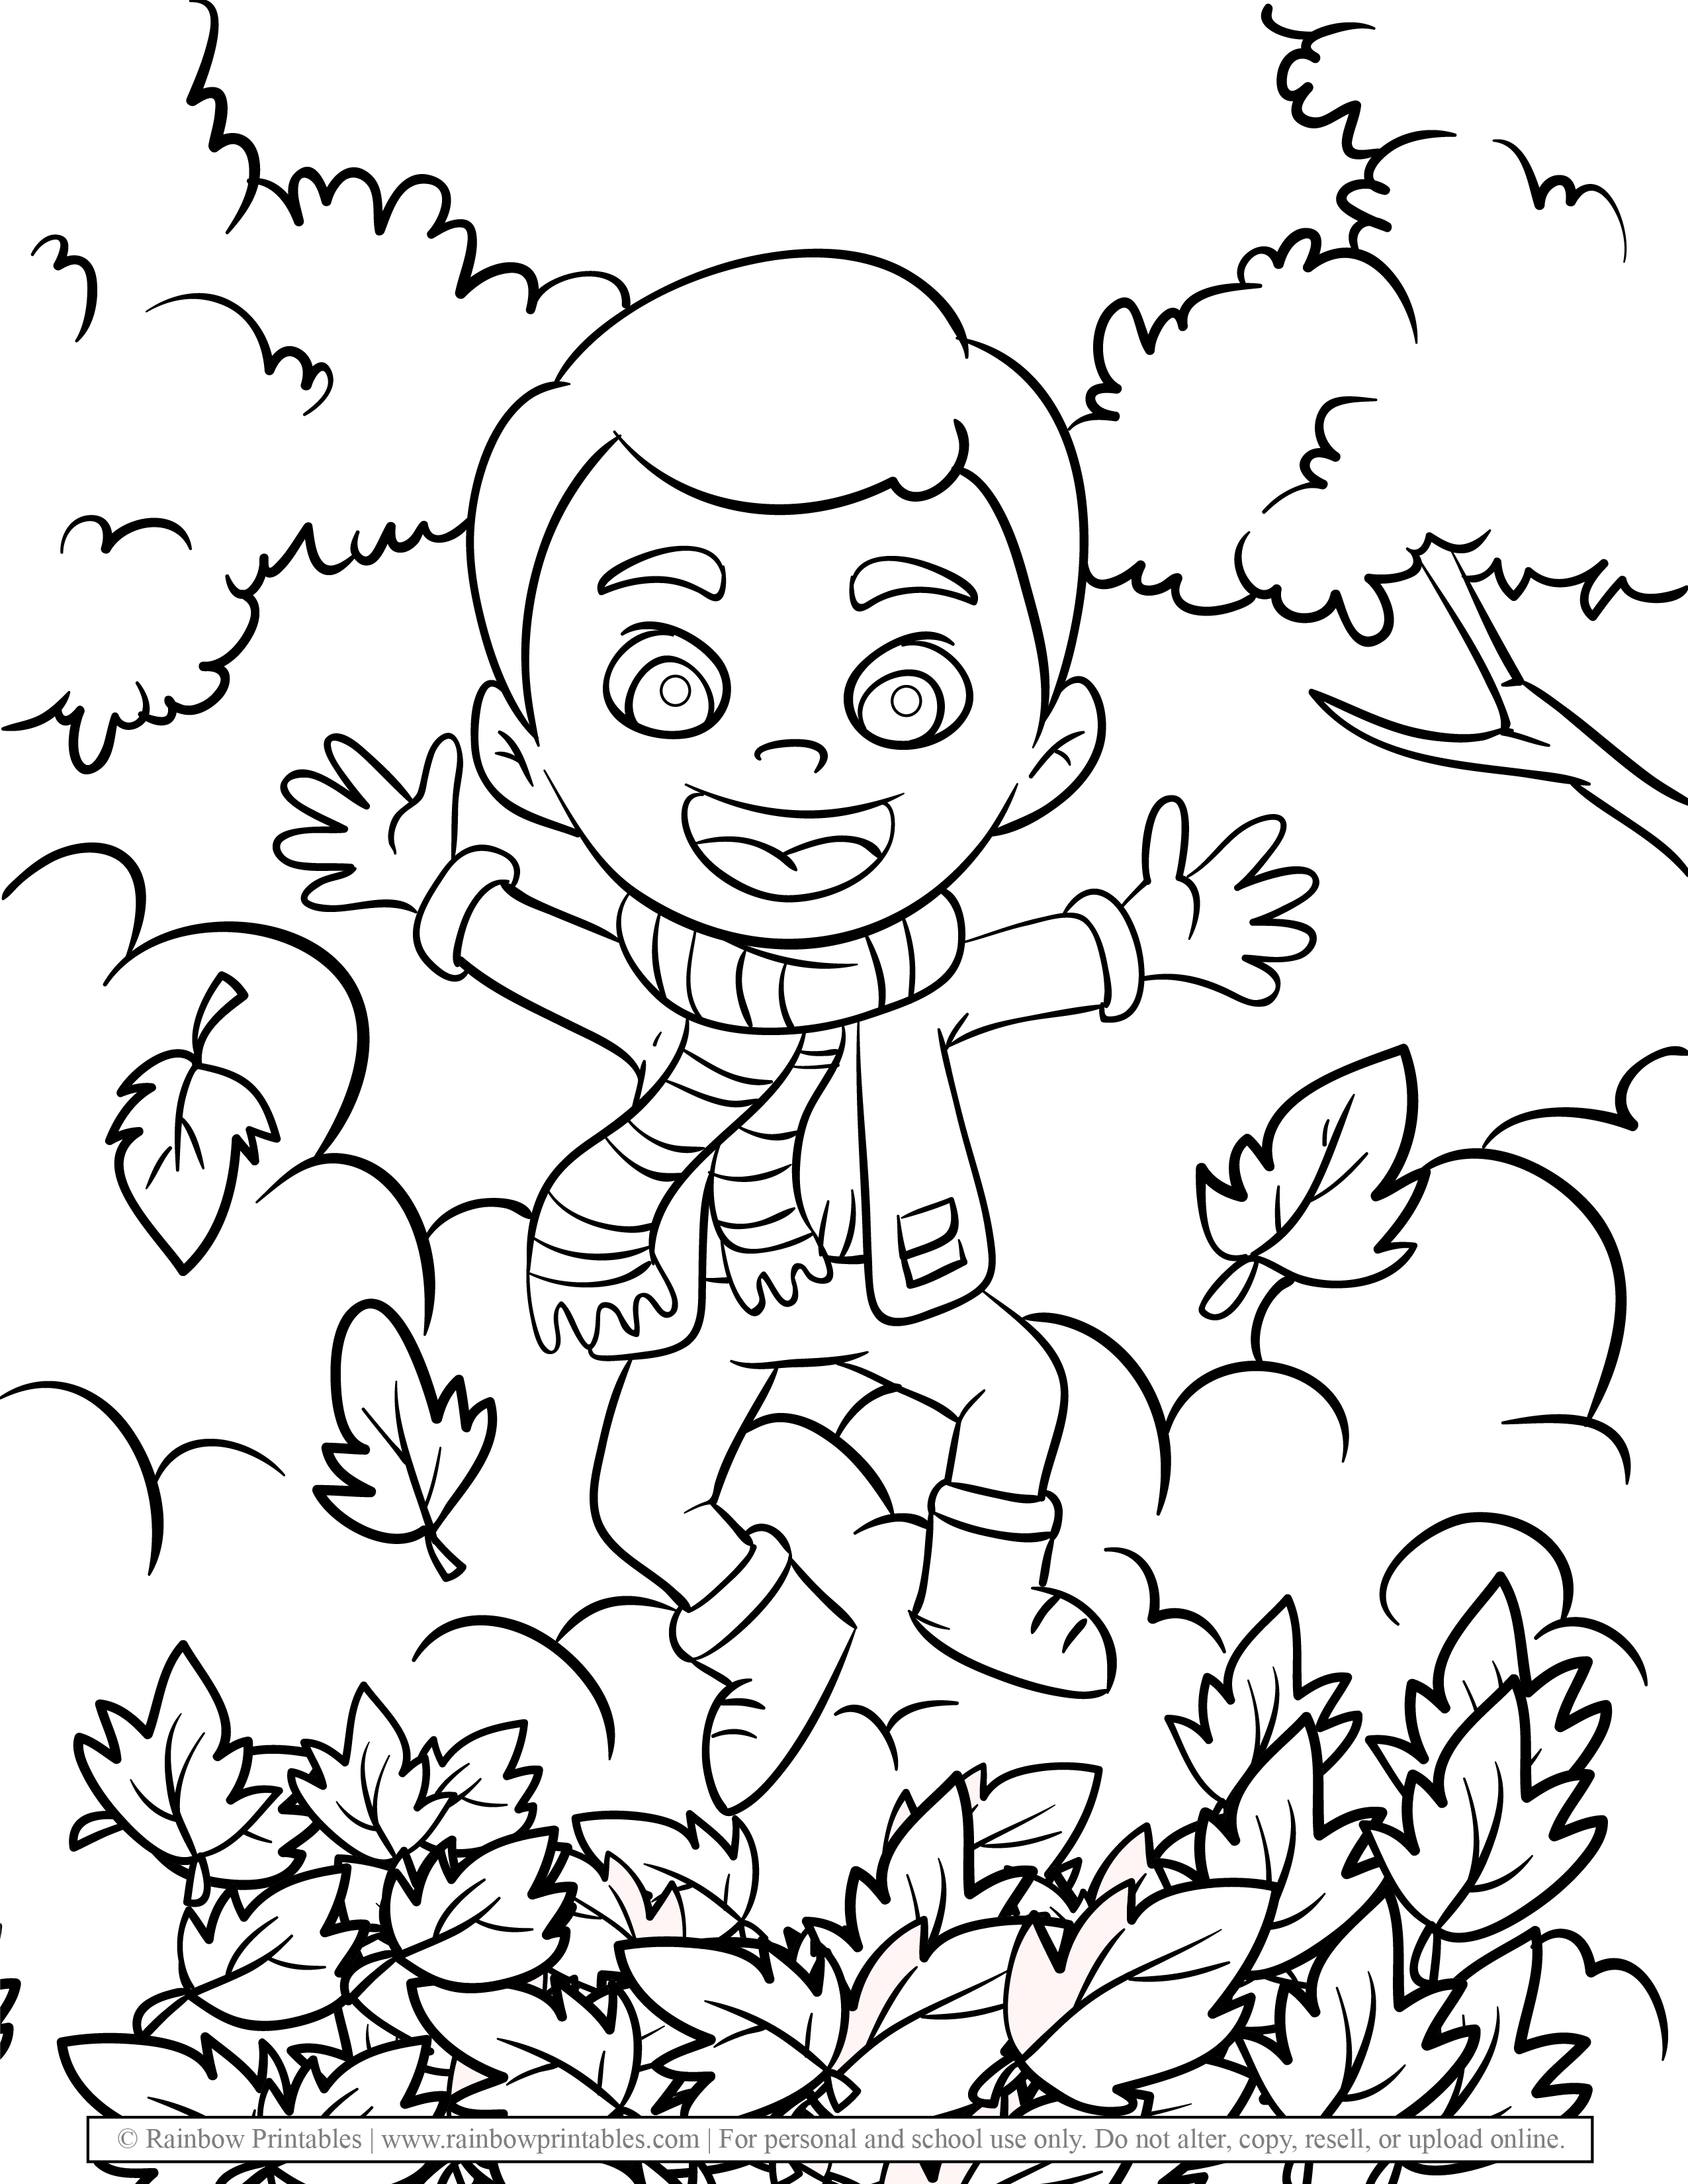 CUTE Young Boy Jumping in FALL Leafs Coloring Pages for Kids Autumn Season Foliage